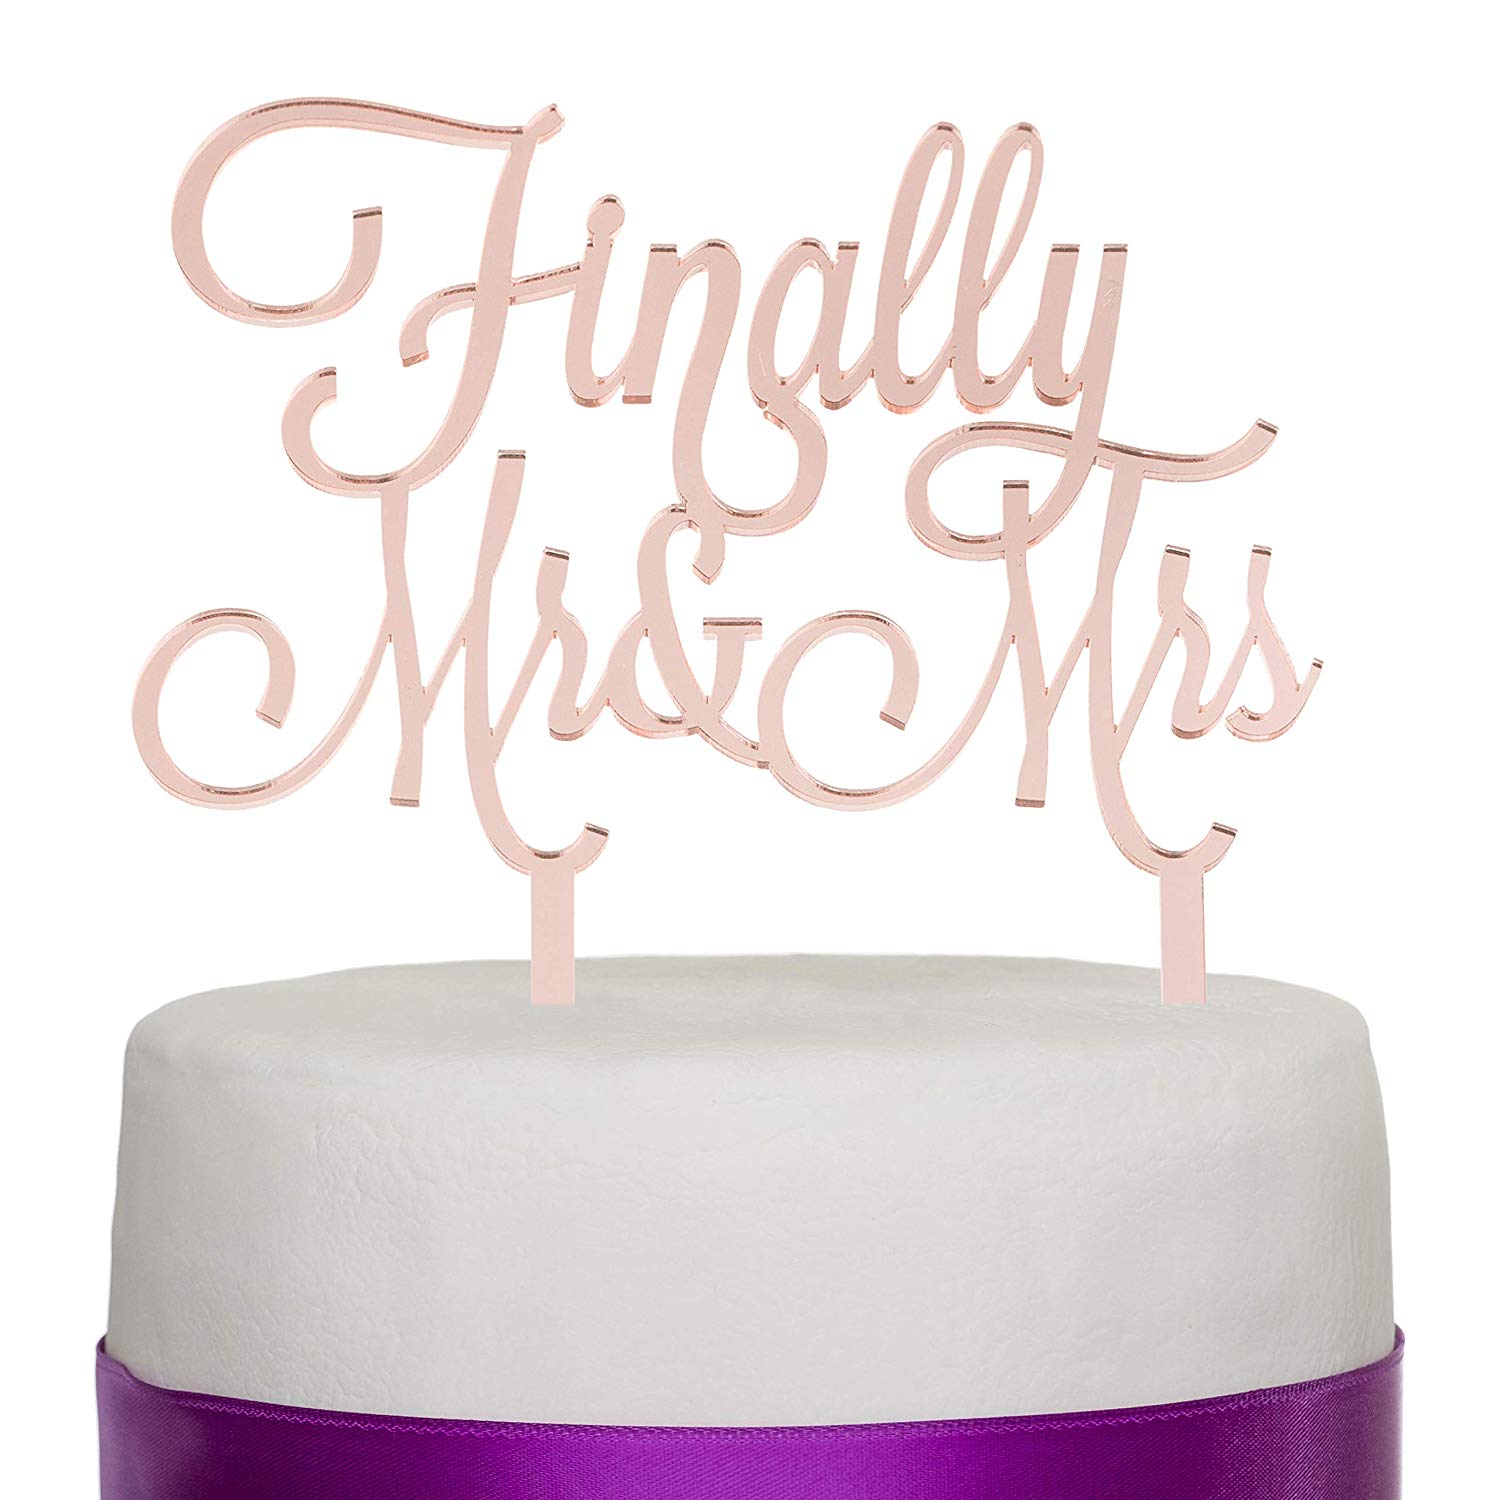 Finally Mr & Mrs Acrylic Cake Toper - Rose Gold